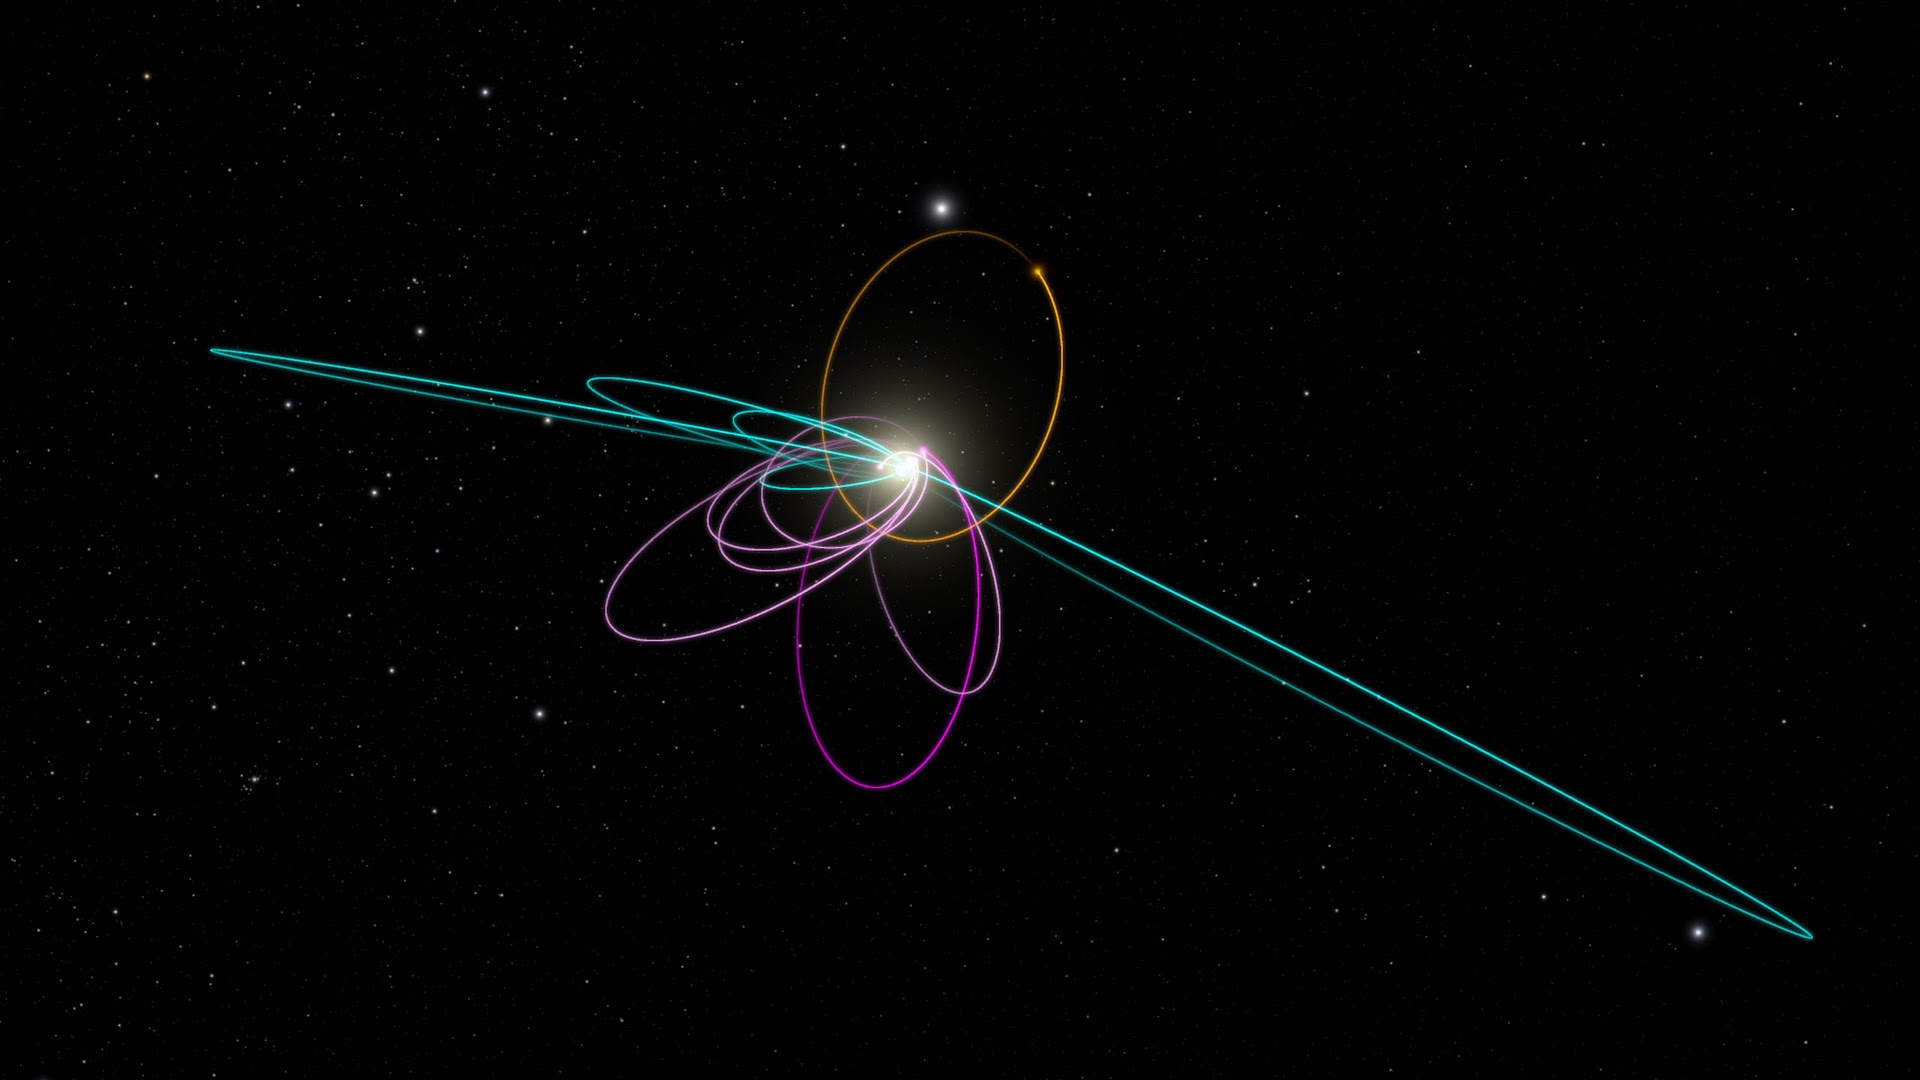 Planet Nine's theoretical orbit (orange) is shown in relation to the perpendicular orbits of five known objects in blue, as well as the predicted orbits of other objects in purple.